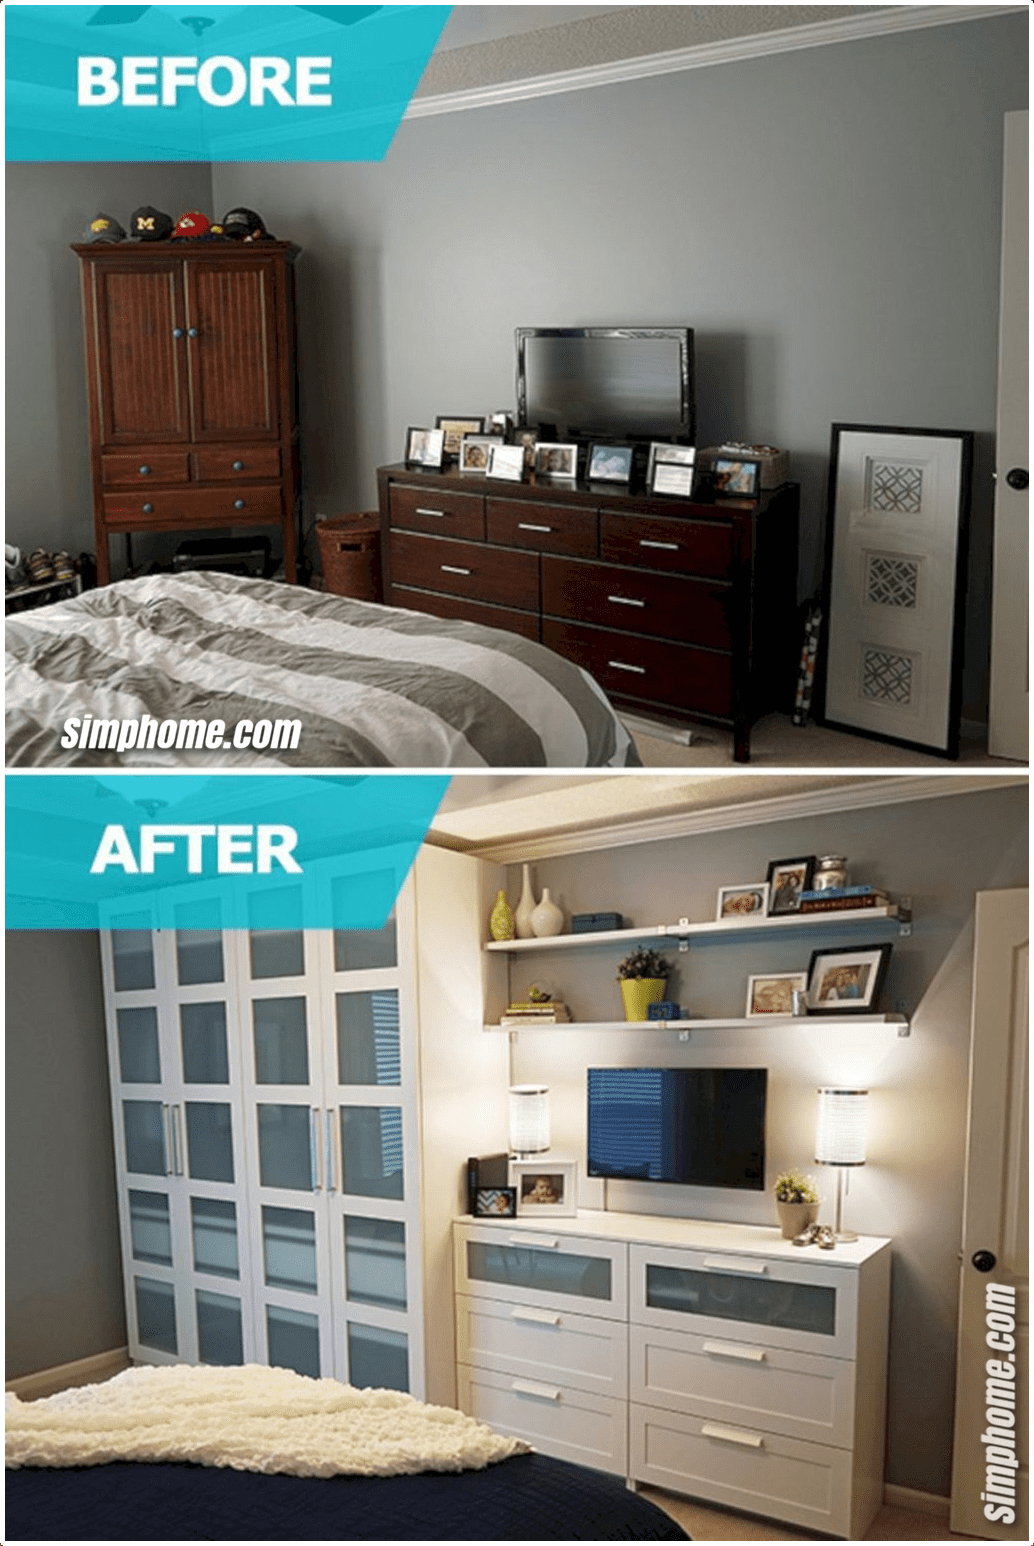 4 DIY Small Bedroom Storage Ideas in 4  Small double bedroom